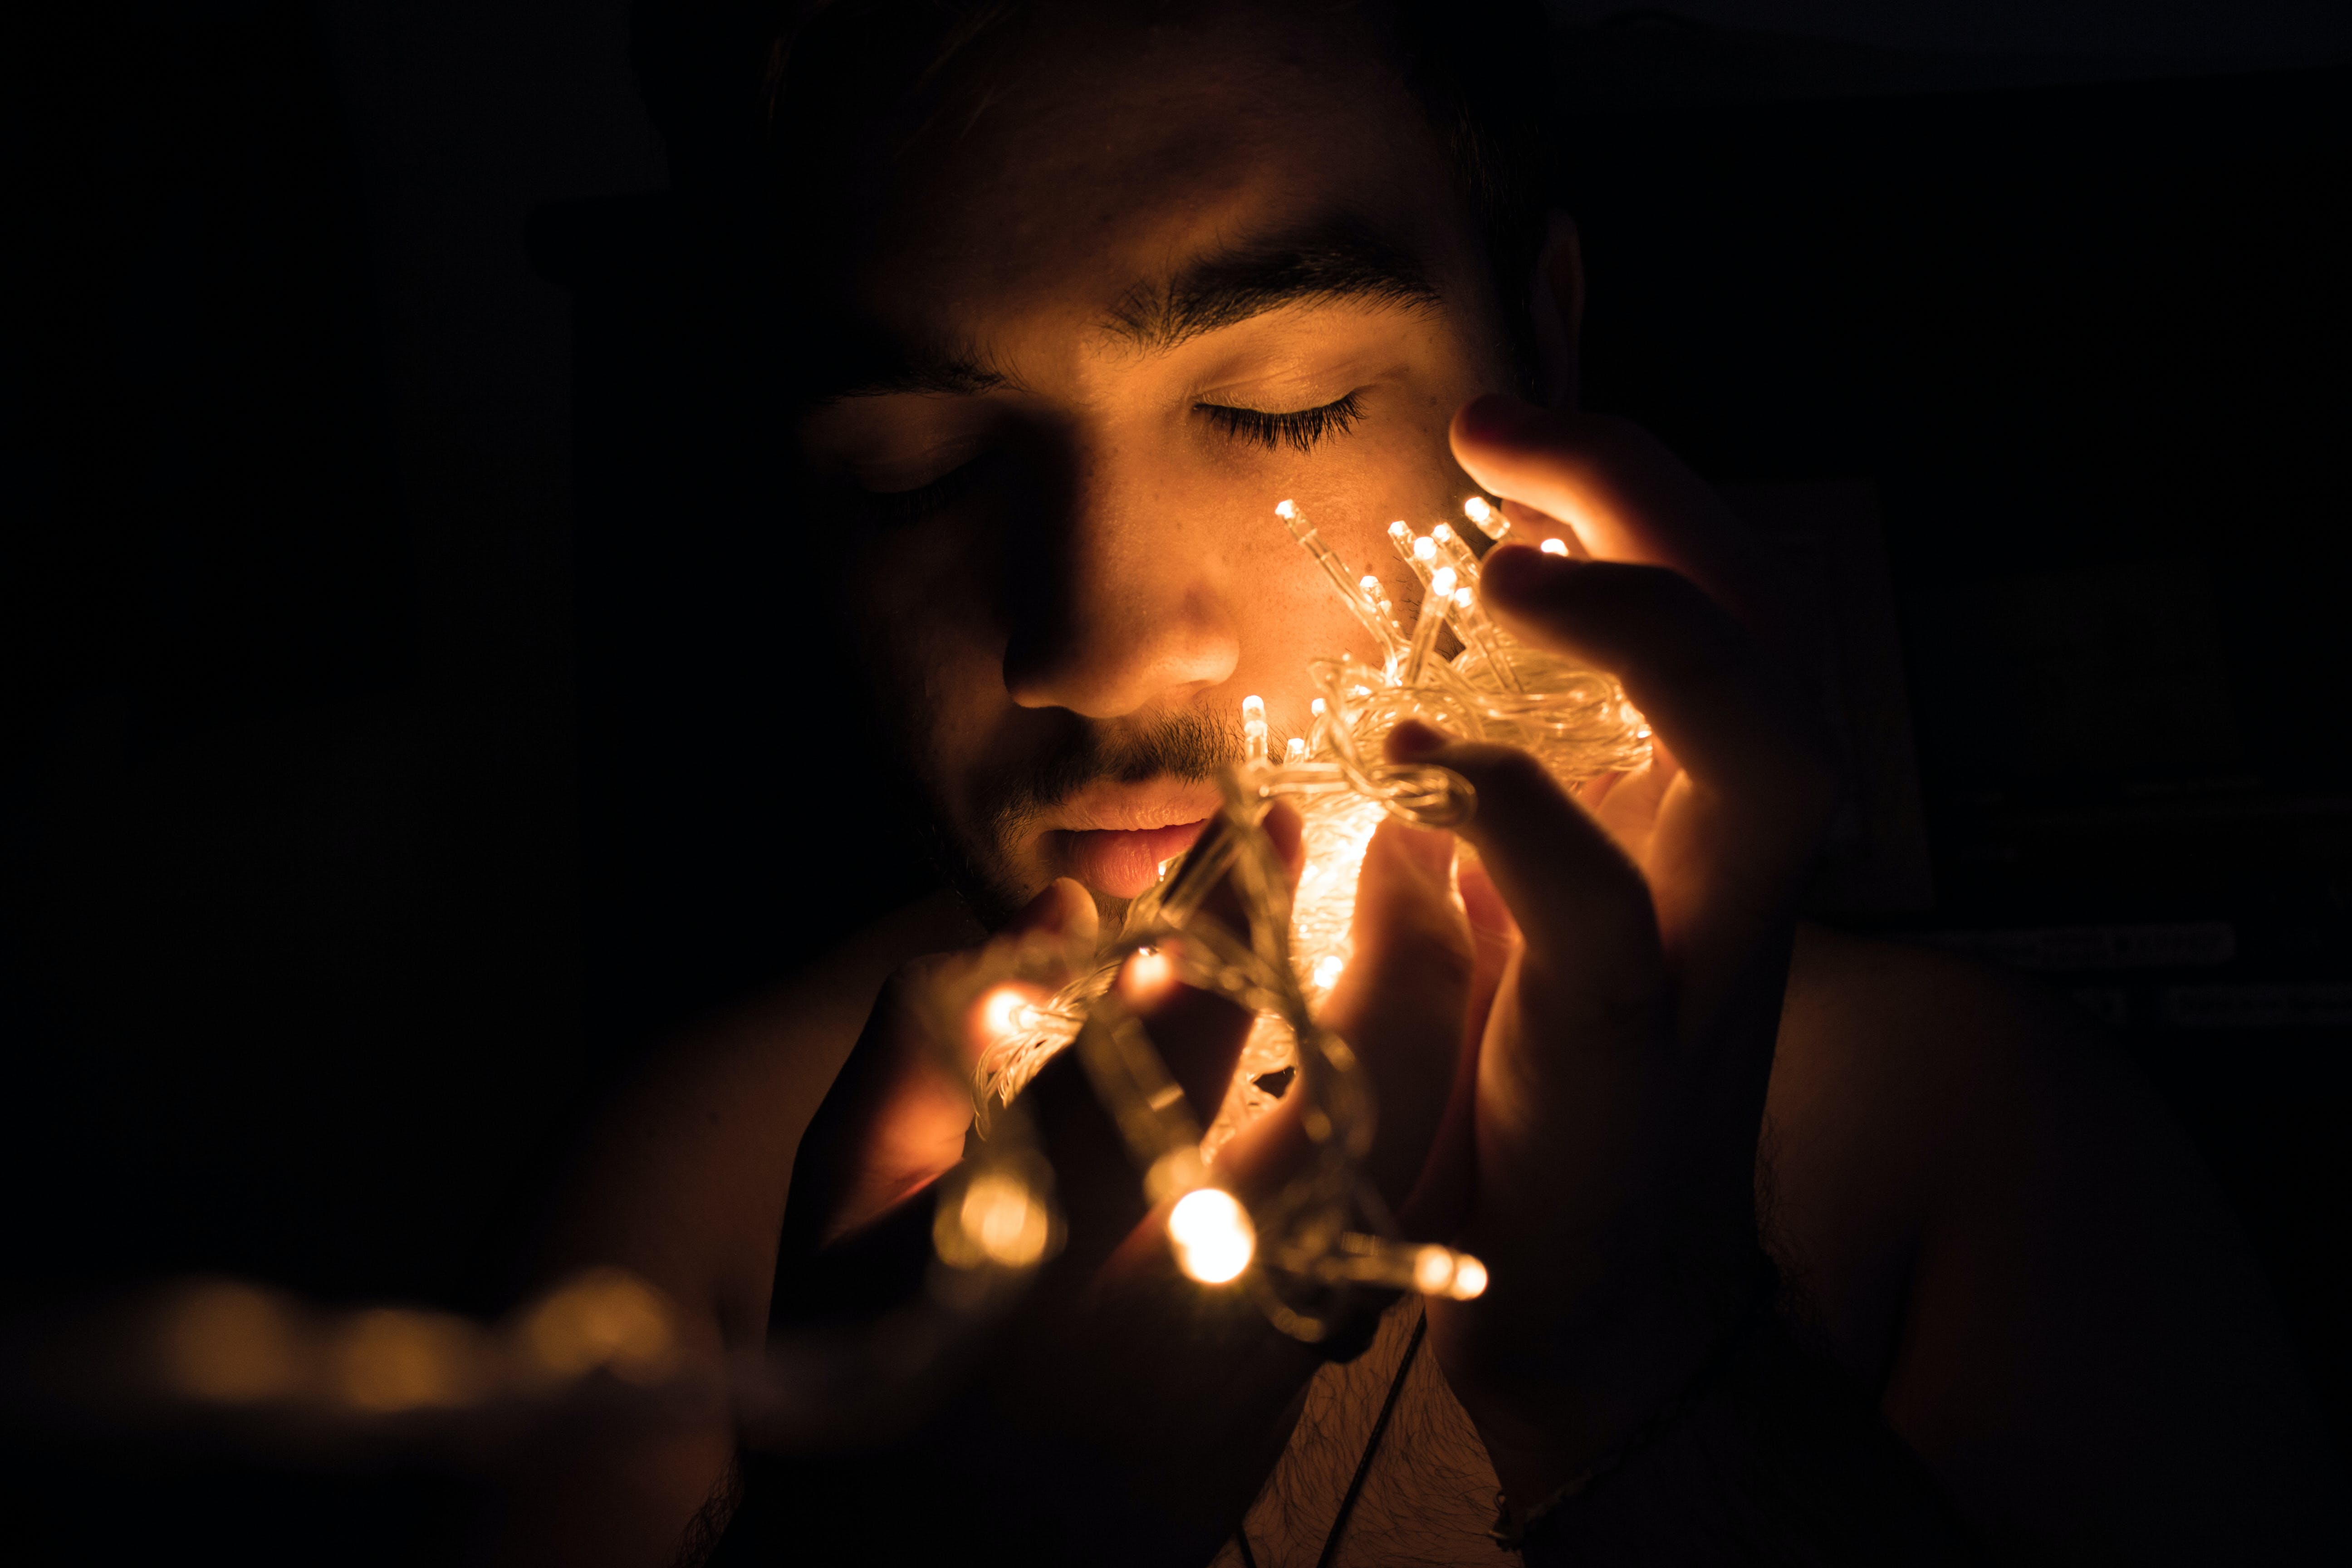 Close-up Photography of Man Holding Christmas Lights